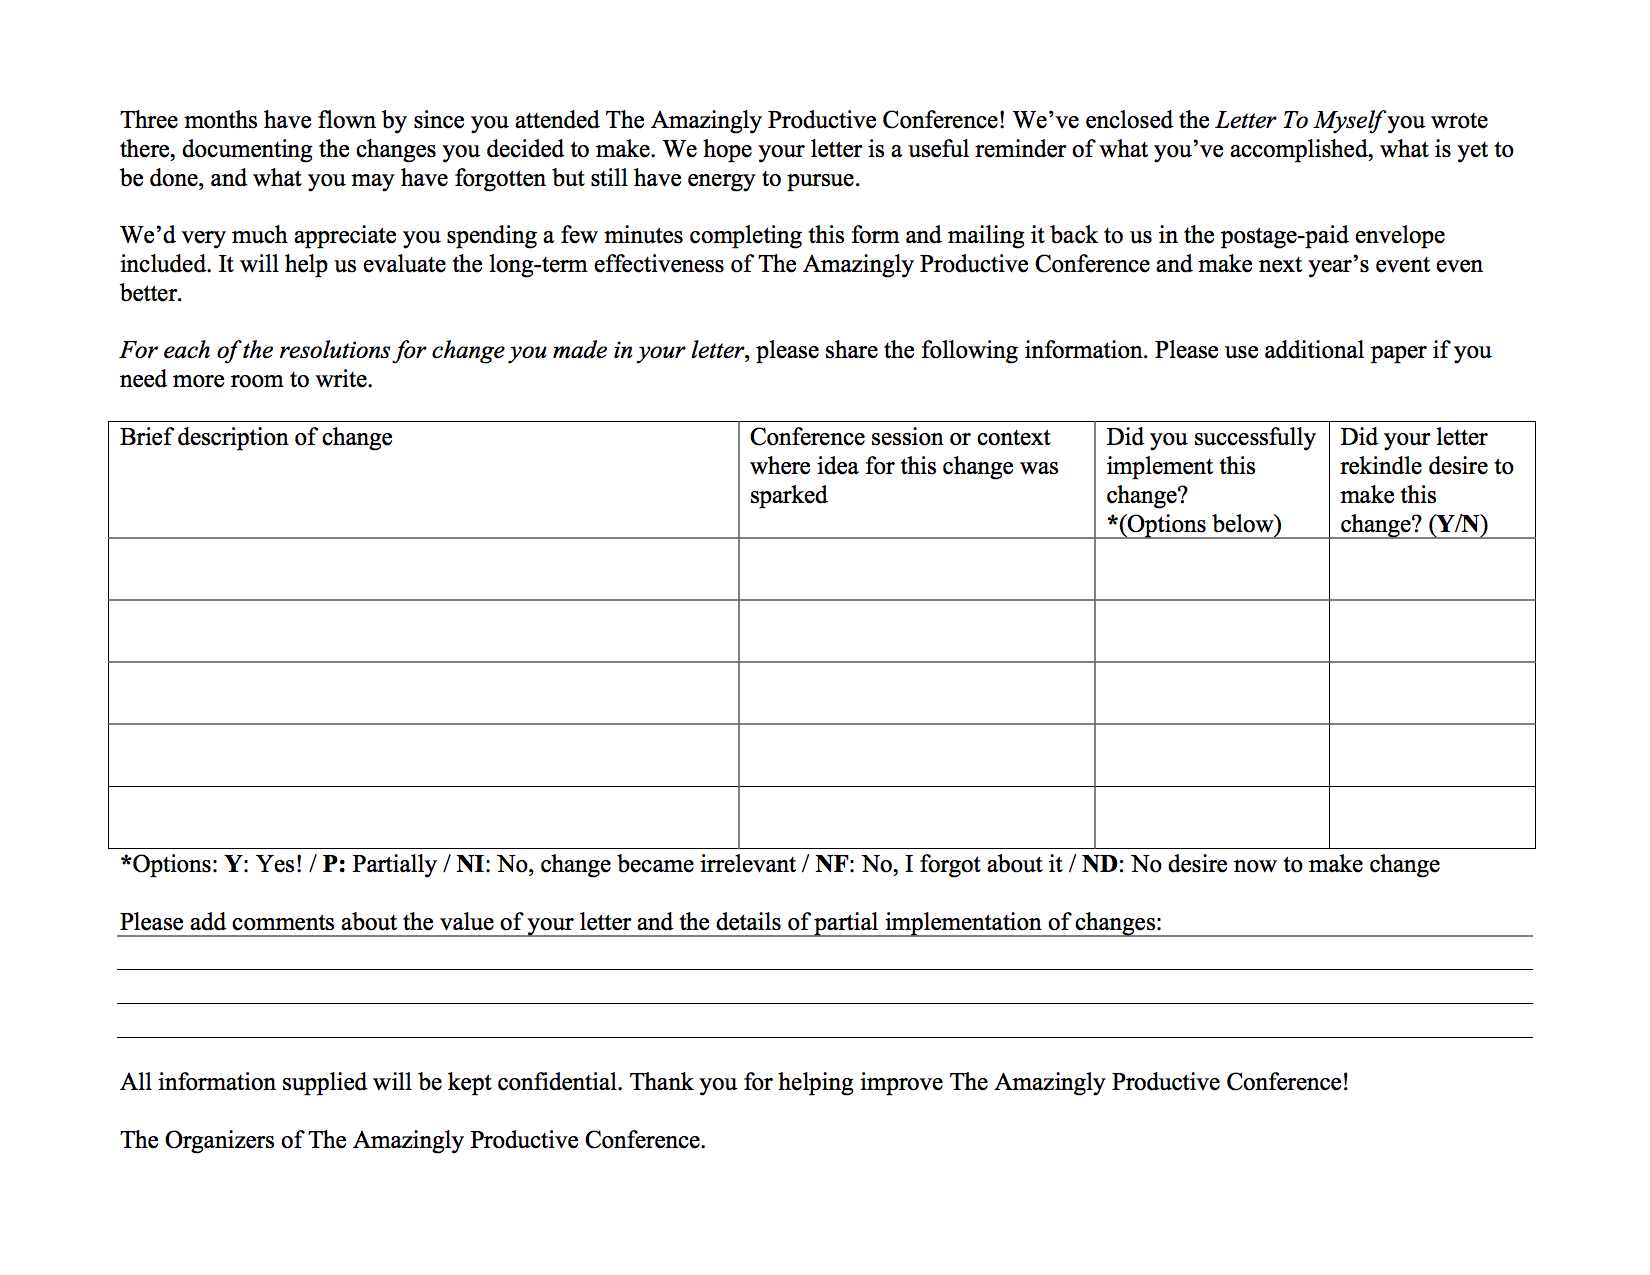 Sample Feedback Form To Be Included In The A Letter To Myself Envelope  Feedback Forms Template